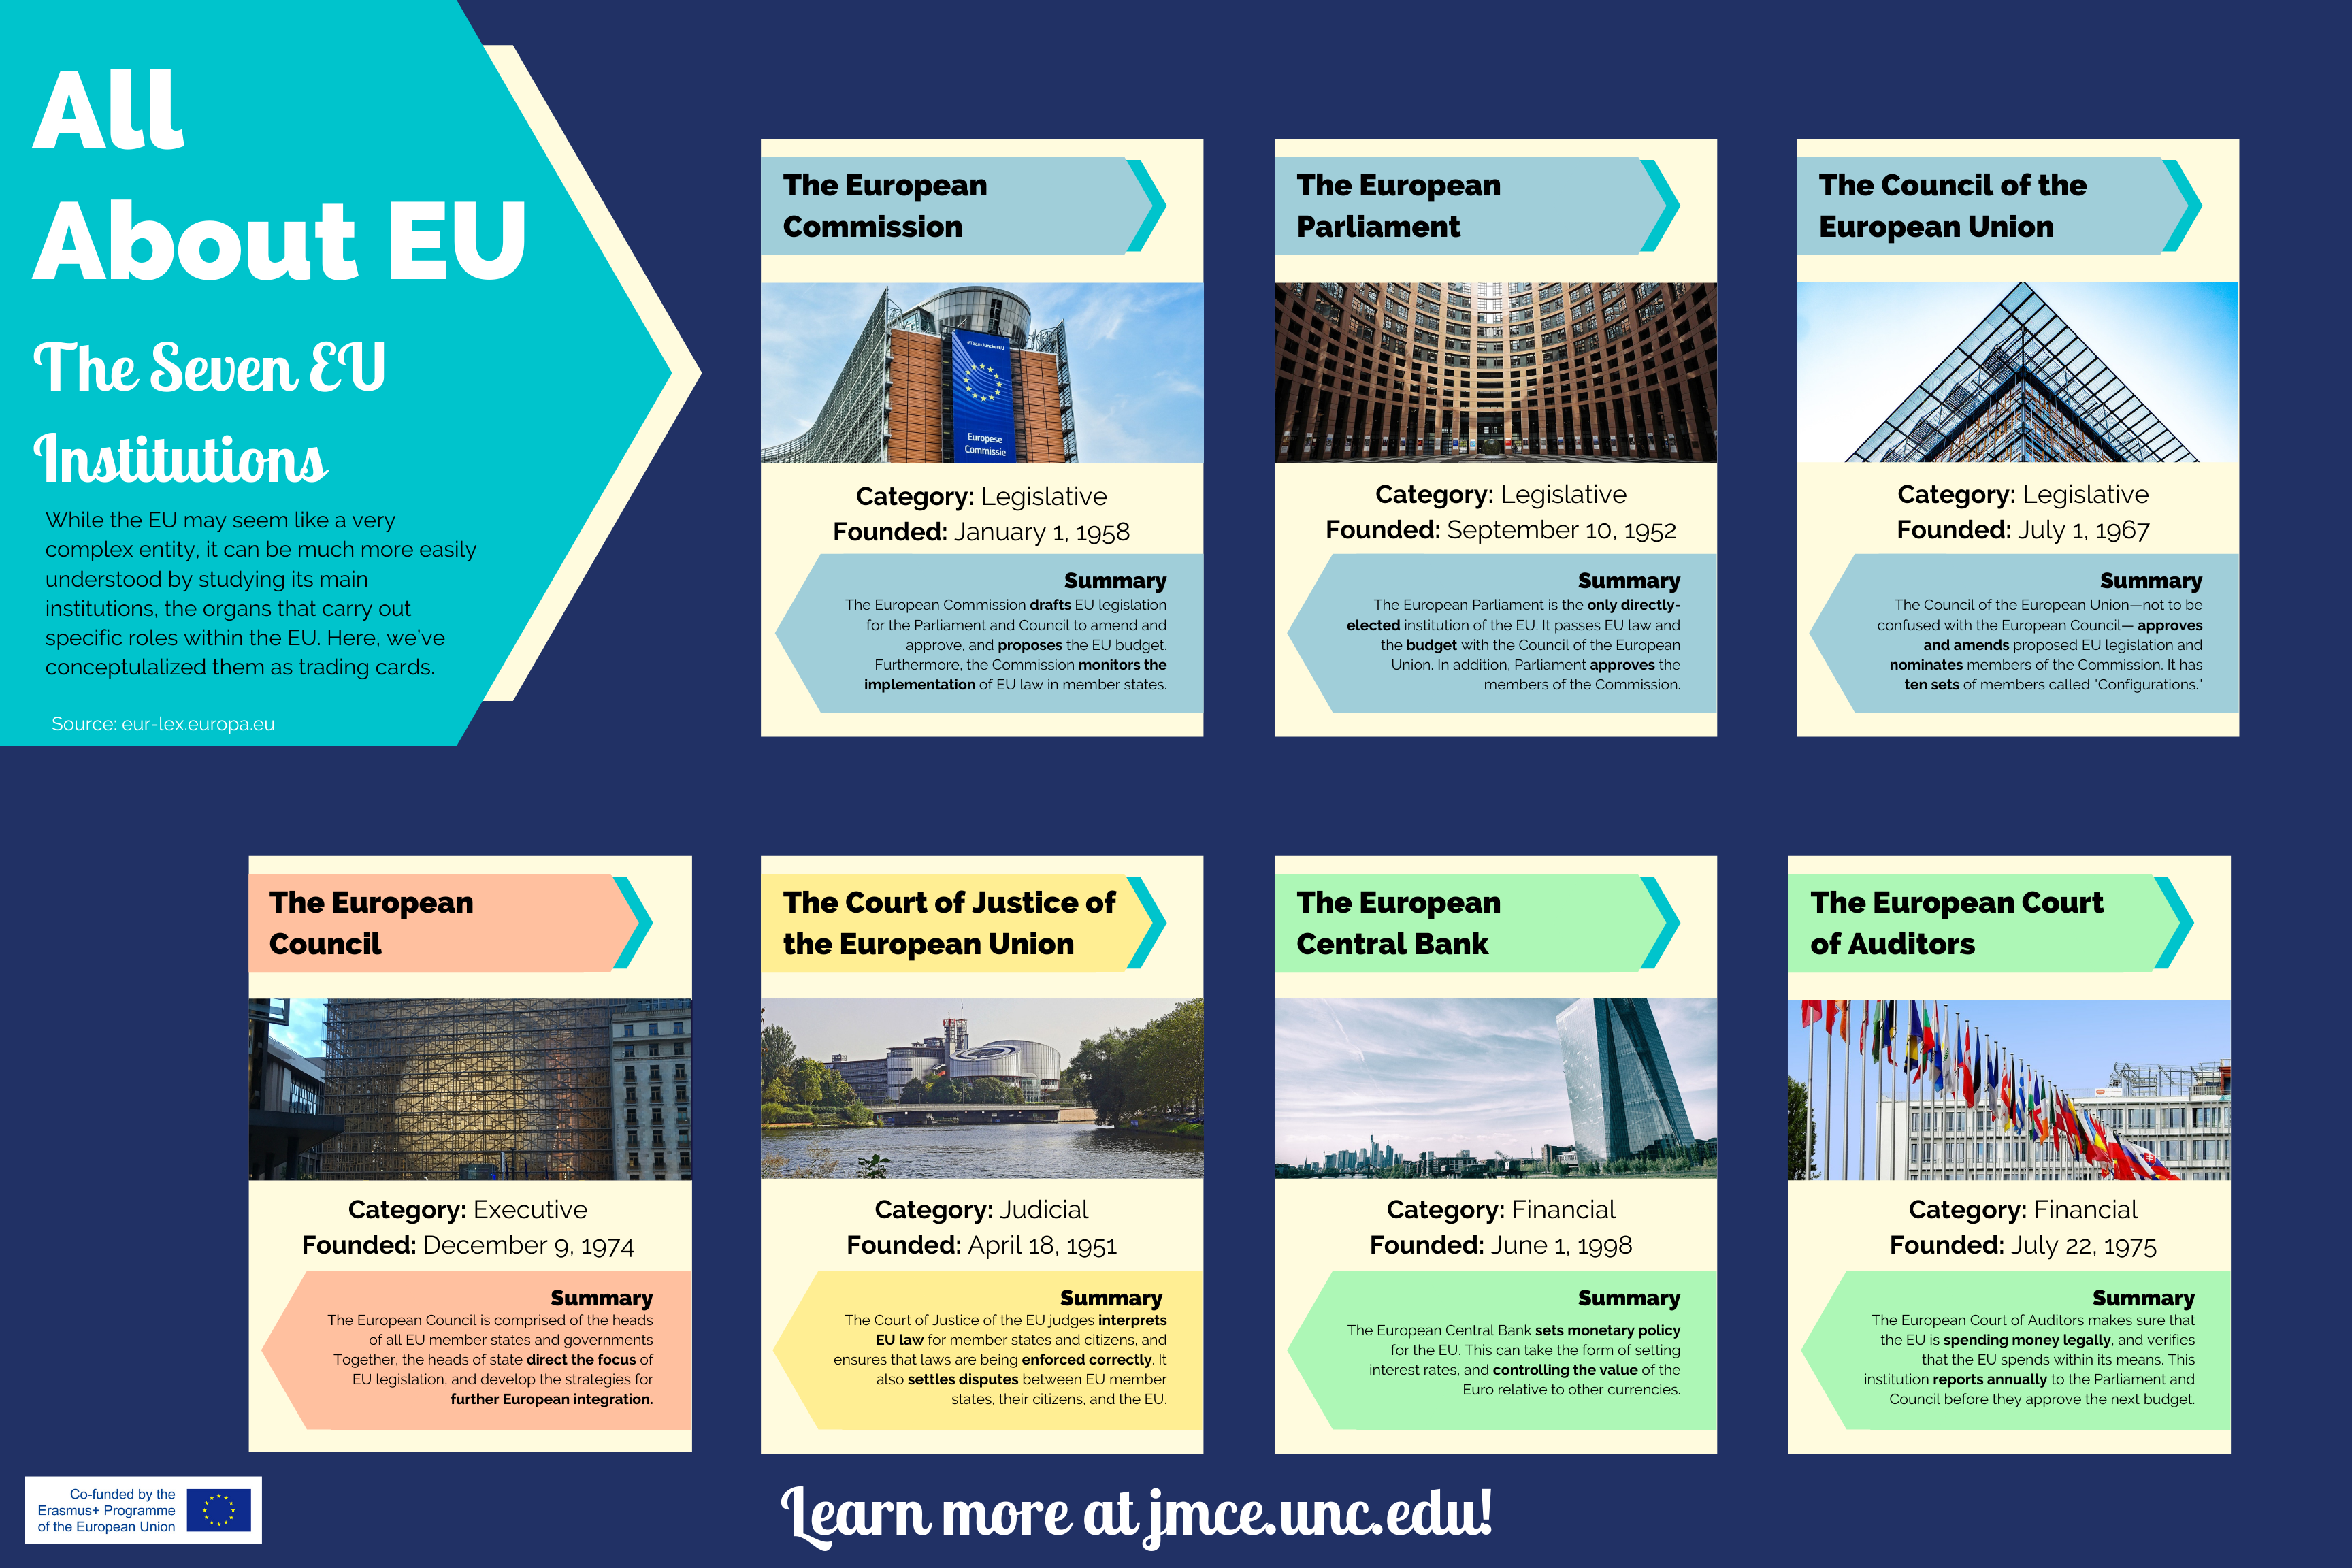 Infographic that presents details on the 7 main EU institutions in the form of trading cards.